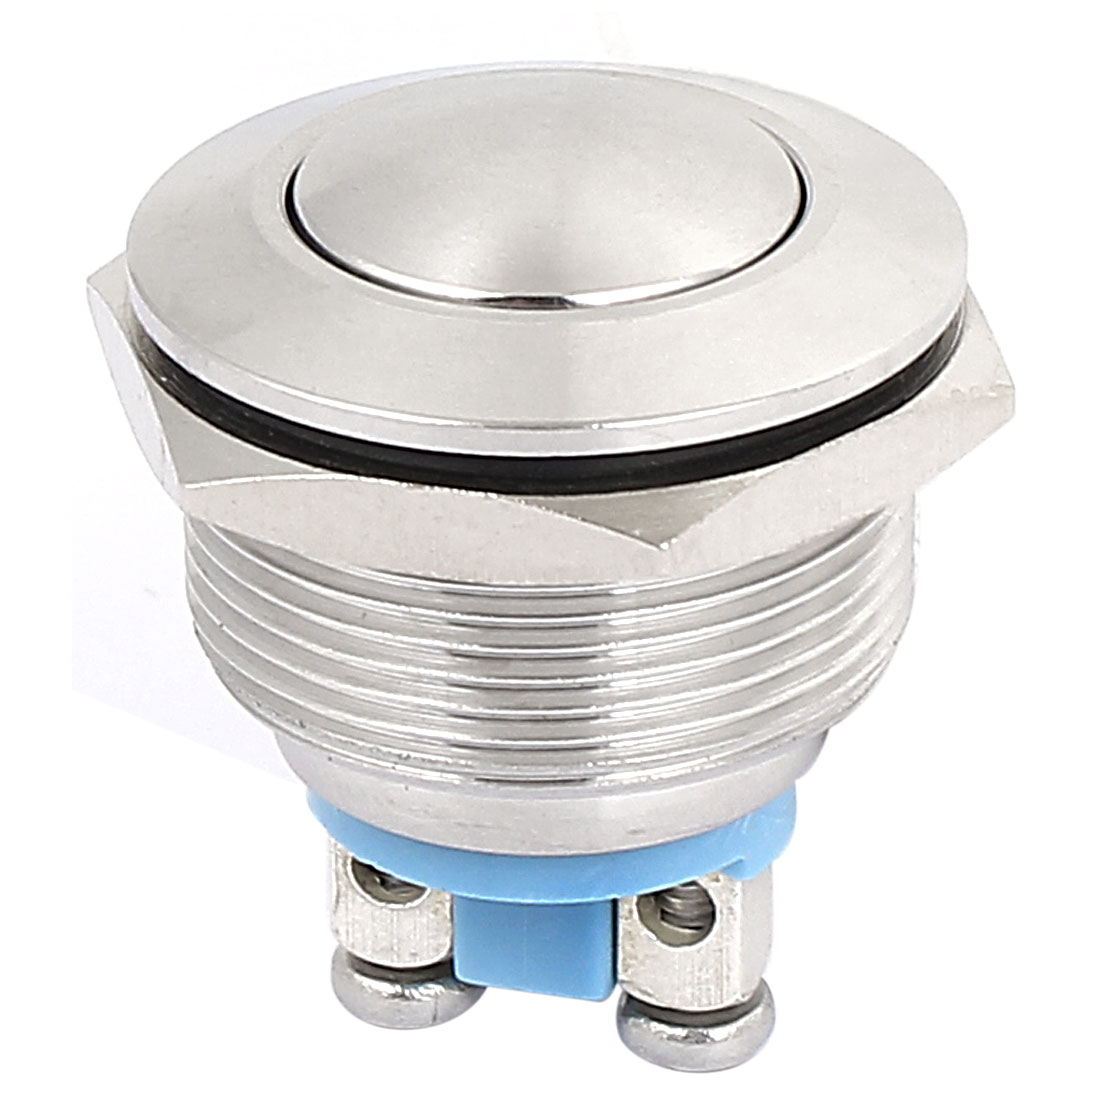 22mm Dia Metal SPST Momentary Pushbutton Switch Panel Mount Round Head